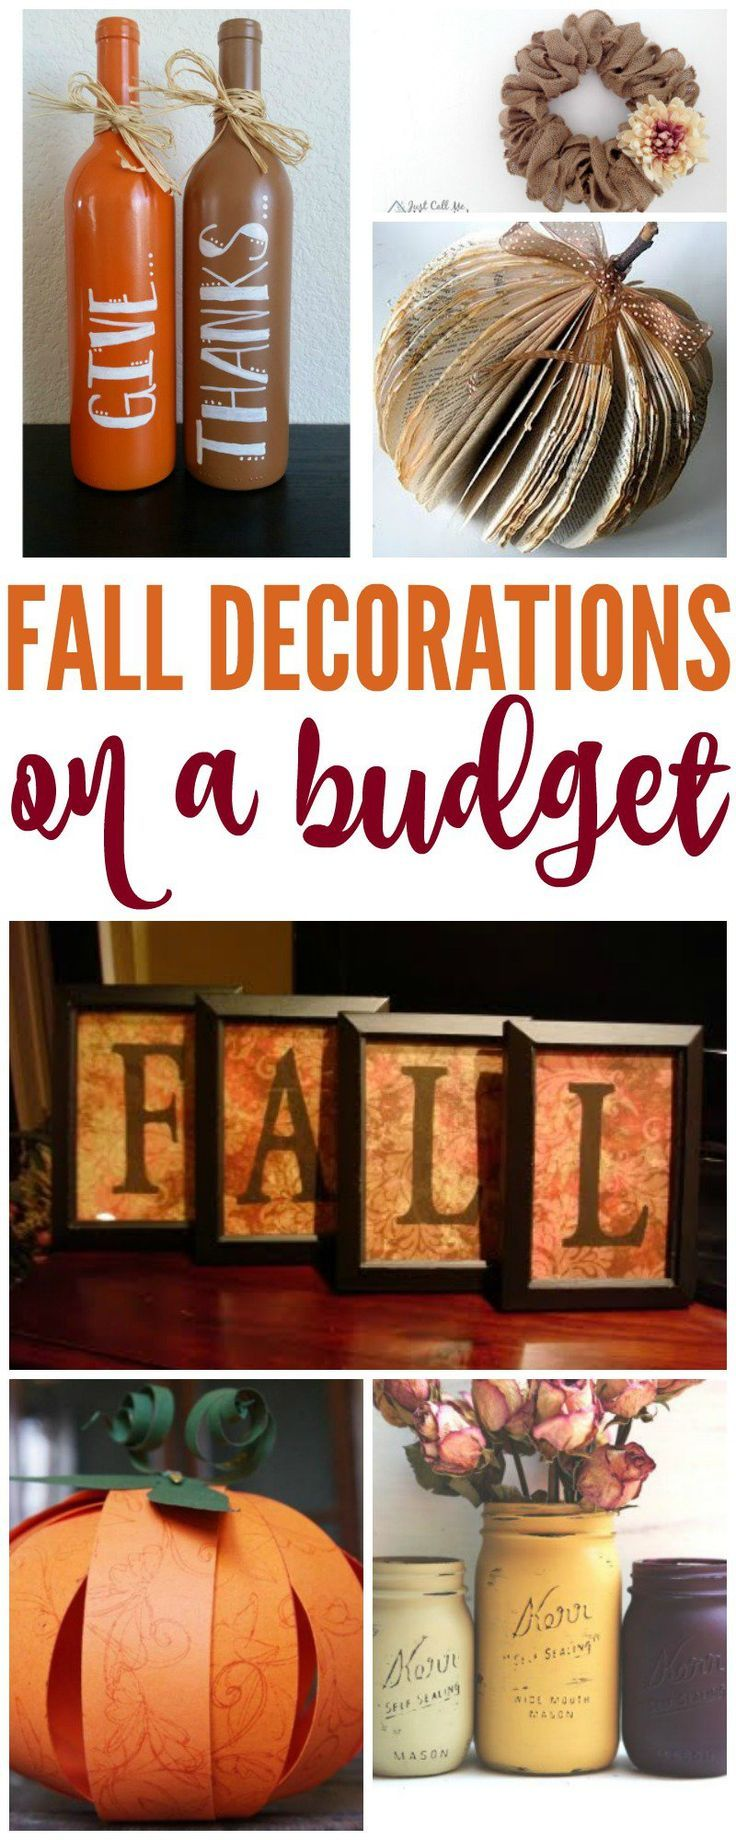 How to Make Fall Decorations on a Budget! DIY Ideas and simple crafts for Fall and Thanksgiving!